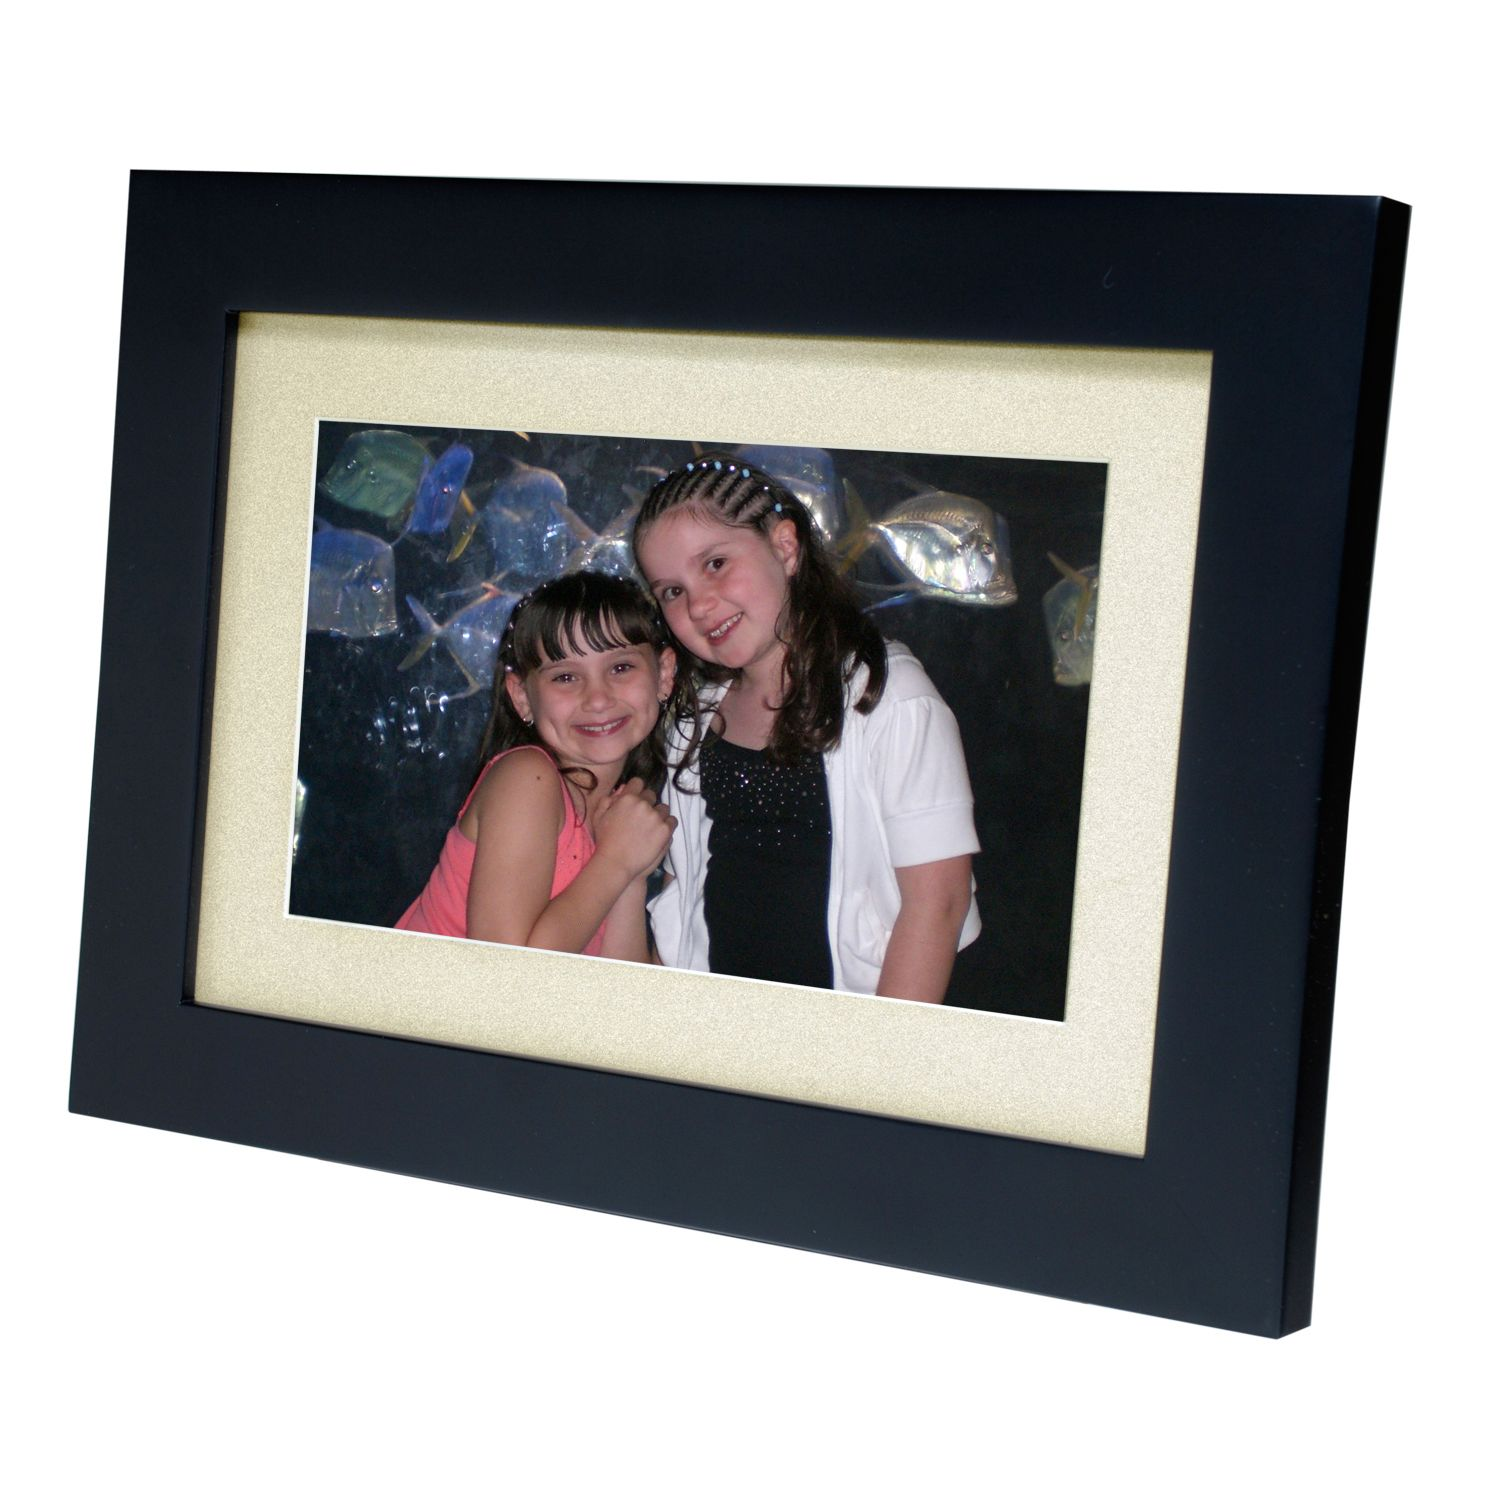 Kmart Digital Photo Frame Smartparts 8 5 In Digital Picture Frame Black Tvs